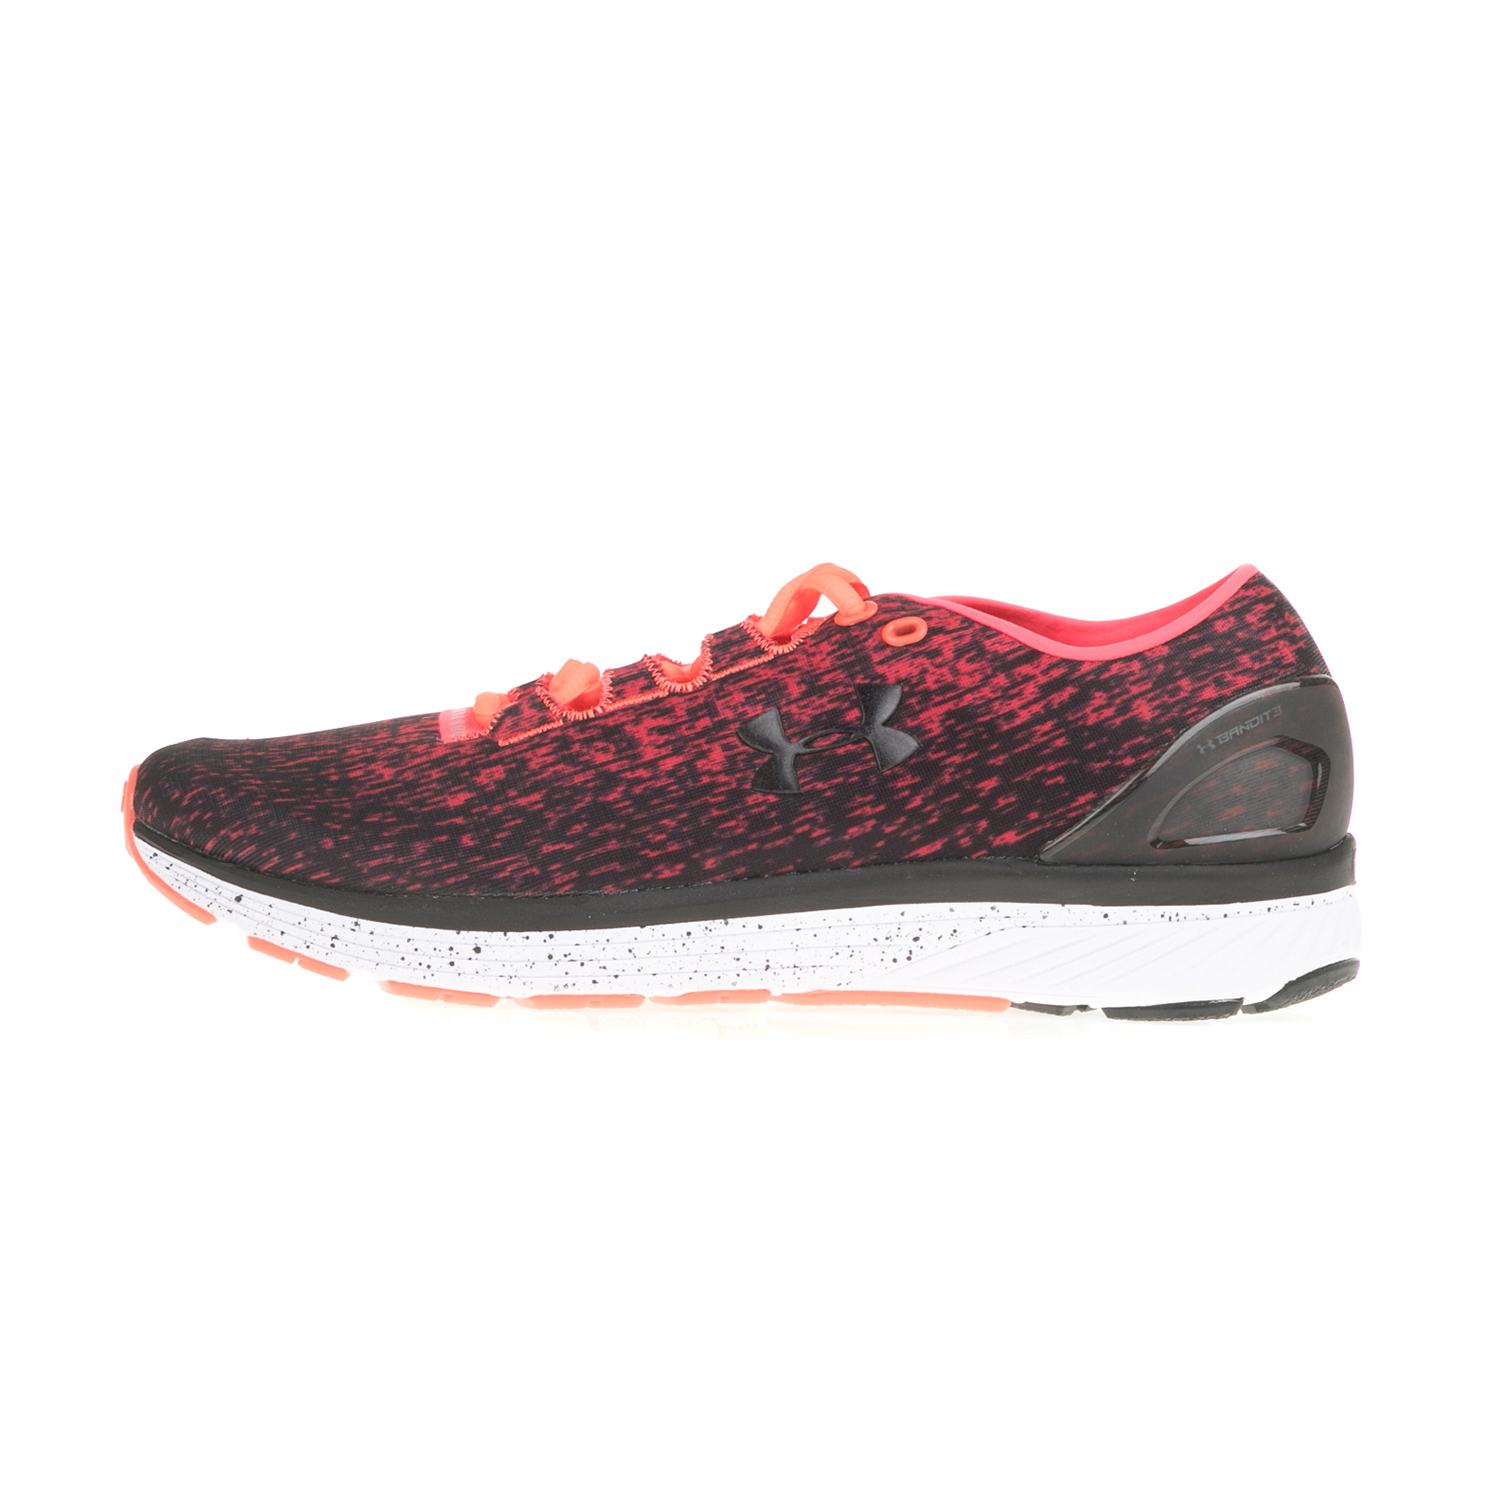 UNDER ARMOUR – Ανδρικά παπούτσια UNDER ARMOUR CHARGED BANDIT 3 OMBRE μαύρα